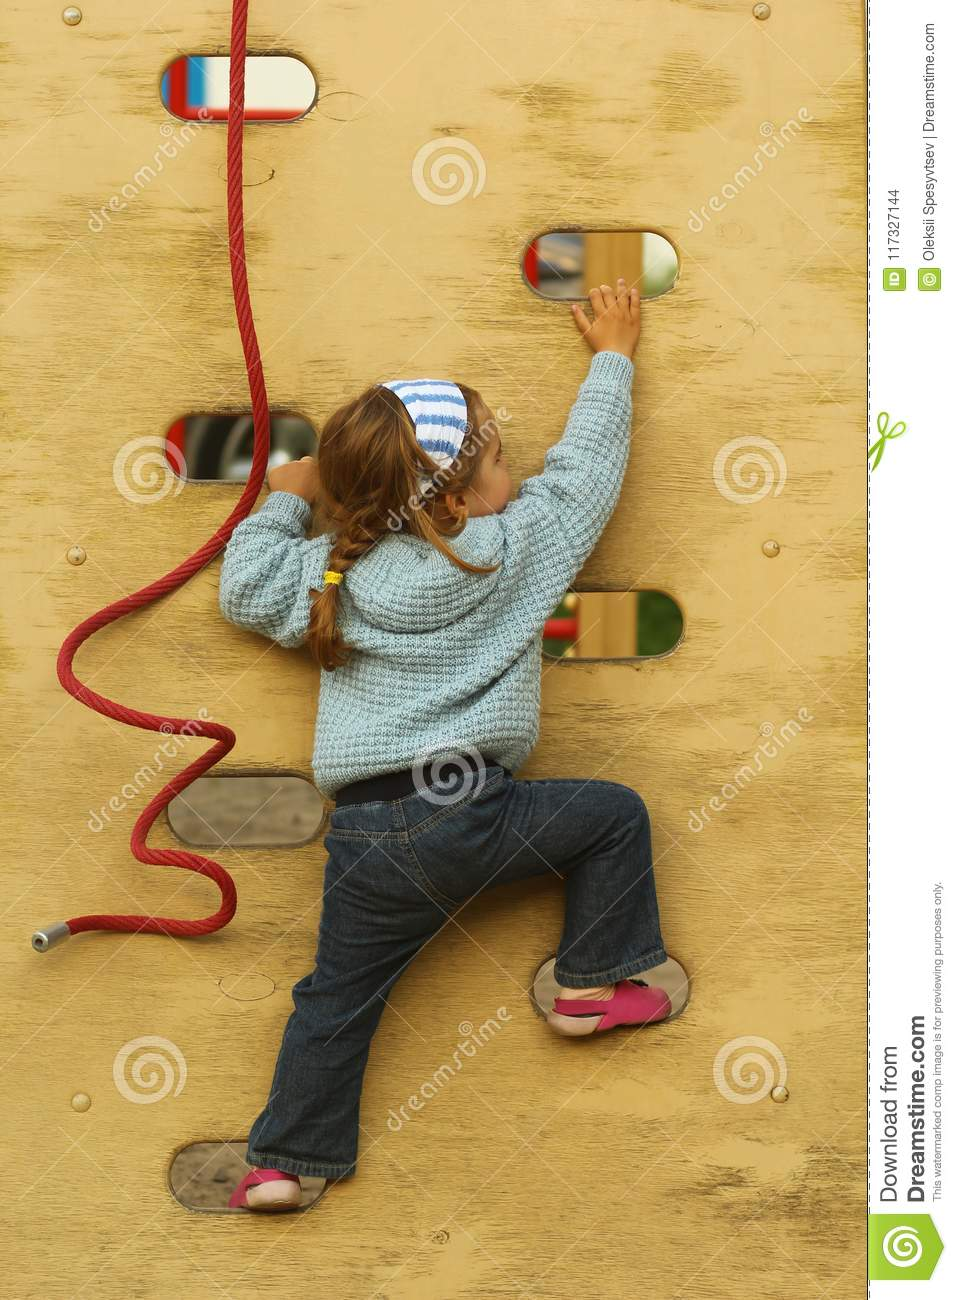 Toddler Girl In Bandana And Hand Made Knitted Cardigan Climbing The Wall On The Playground